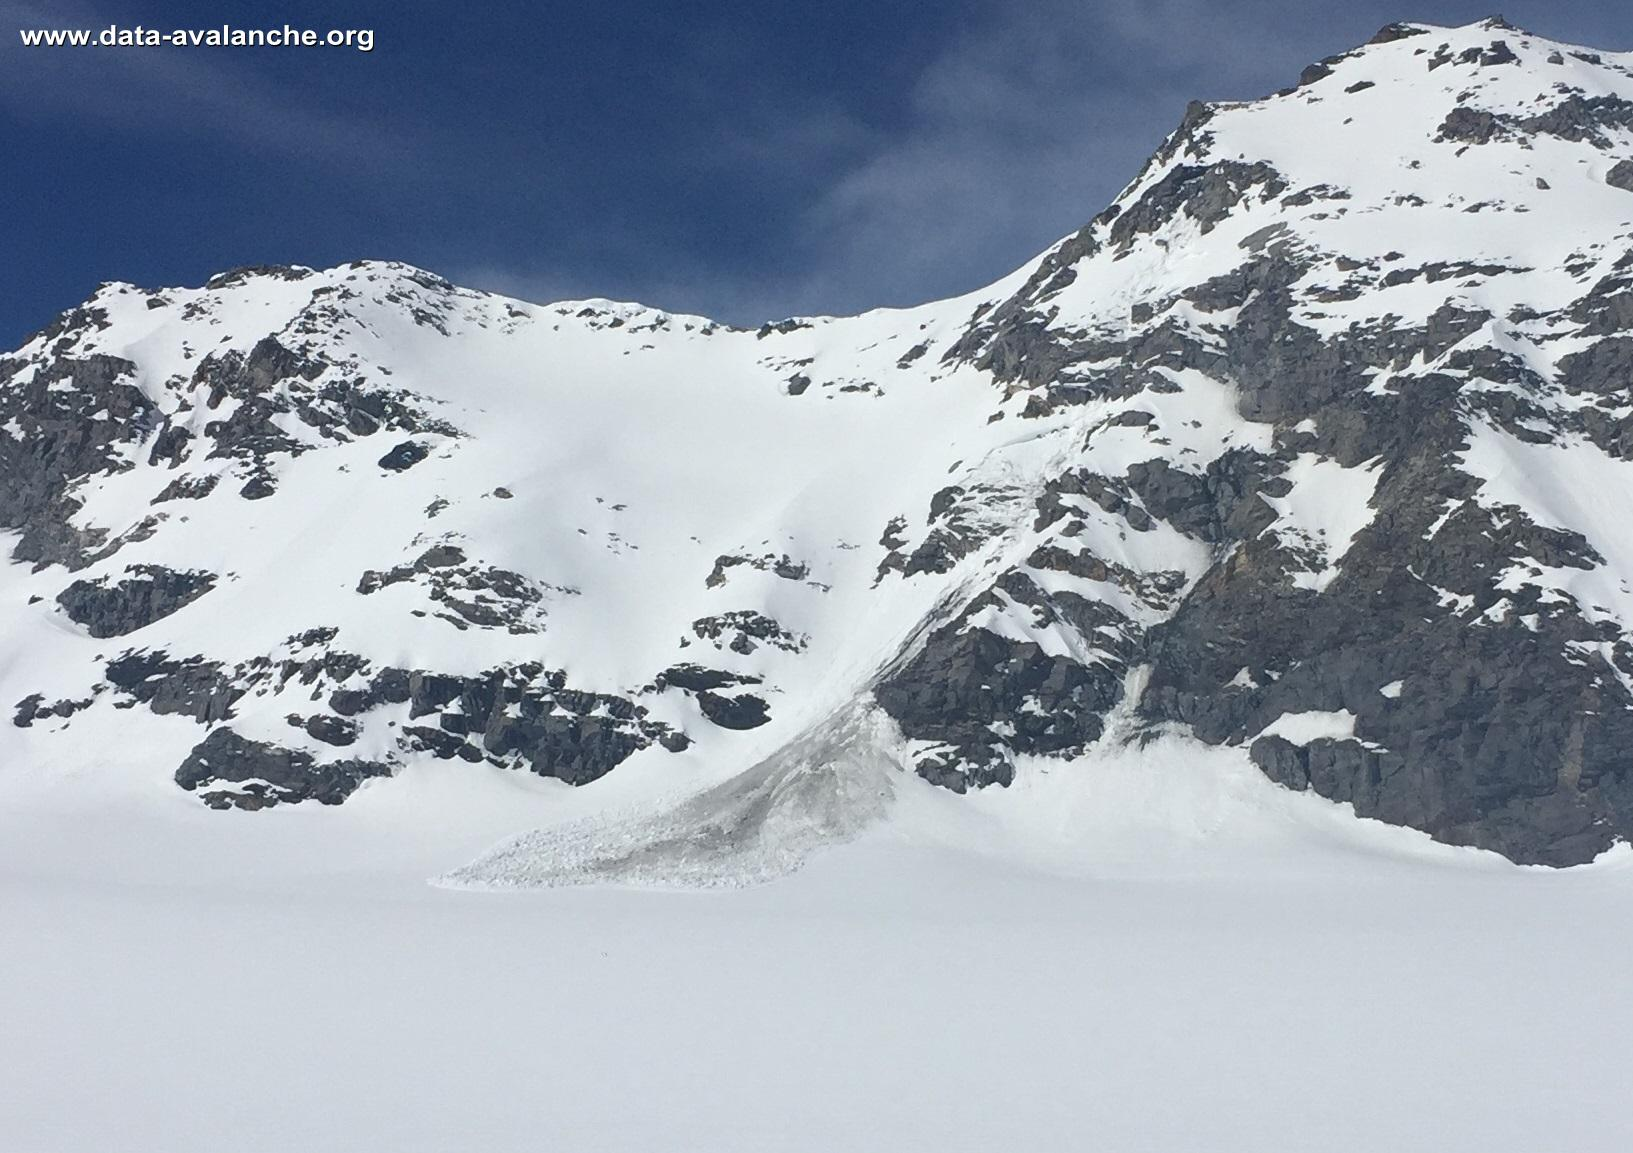 Avalanche Vanoise, secteur Pointe du Bouchet - Photo 1